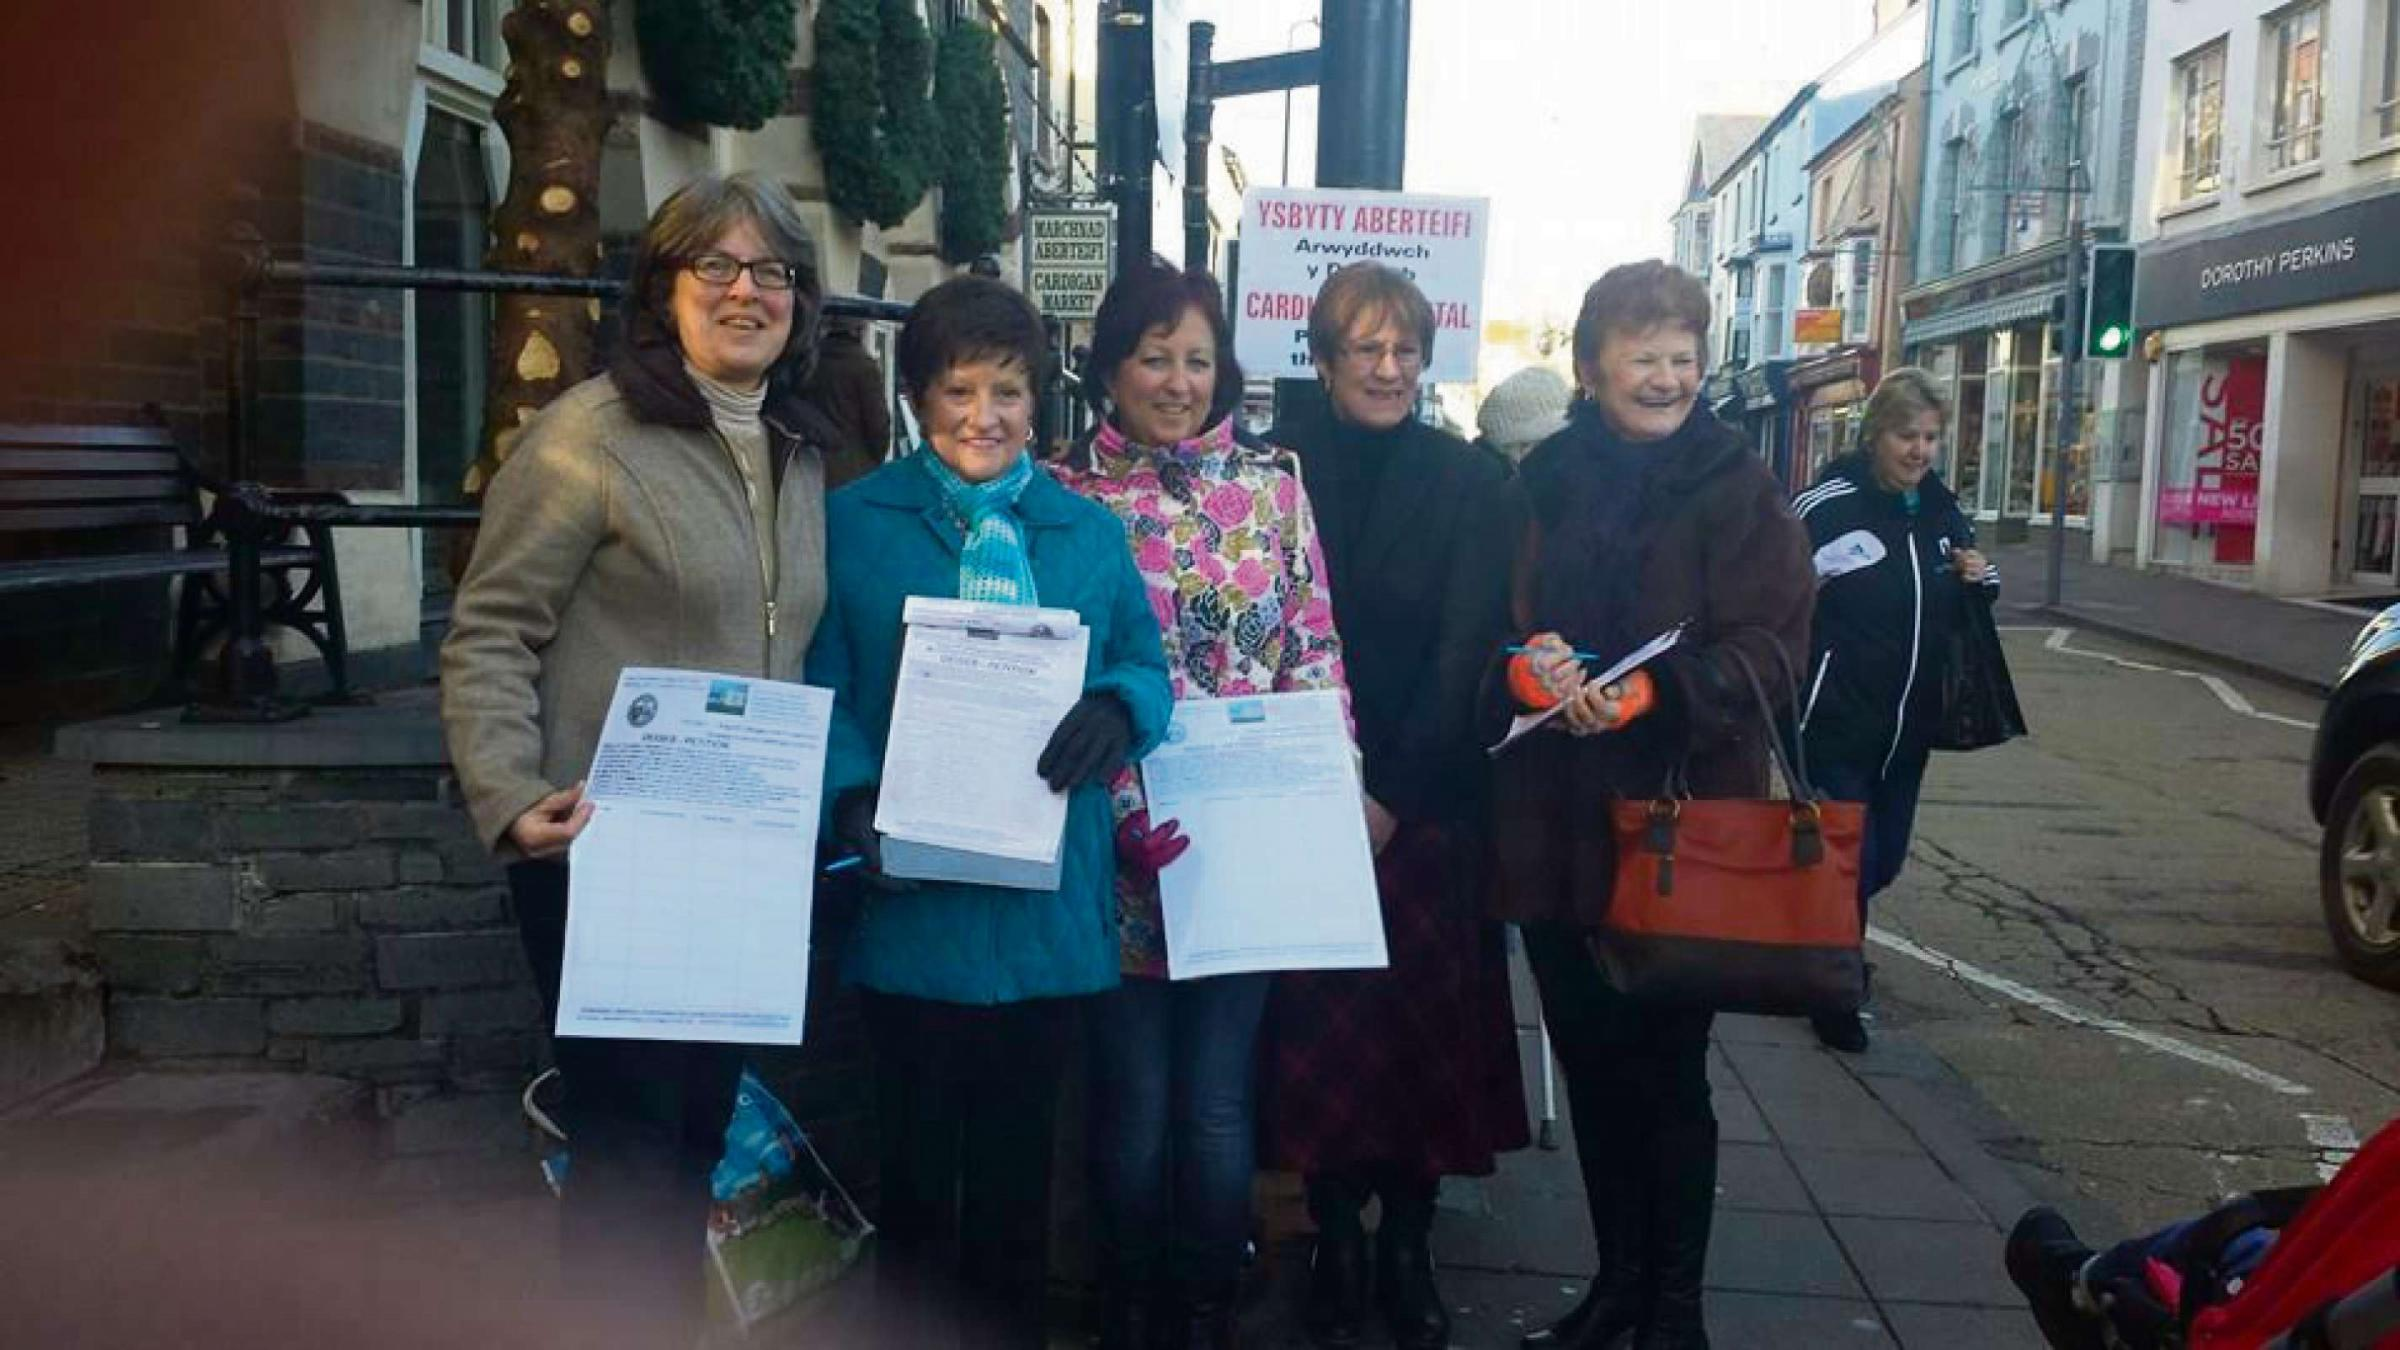 League Of Friends: Cllr Catrin Miles, Bessie Harries, Gwen Jones, Joyce Watson AM and Mair Morris